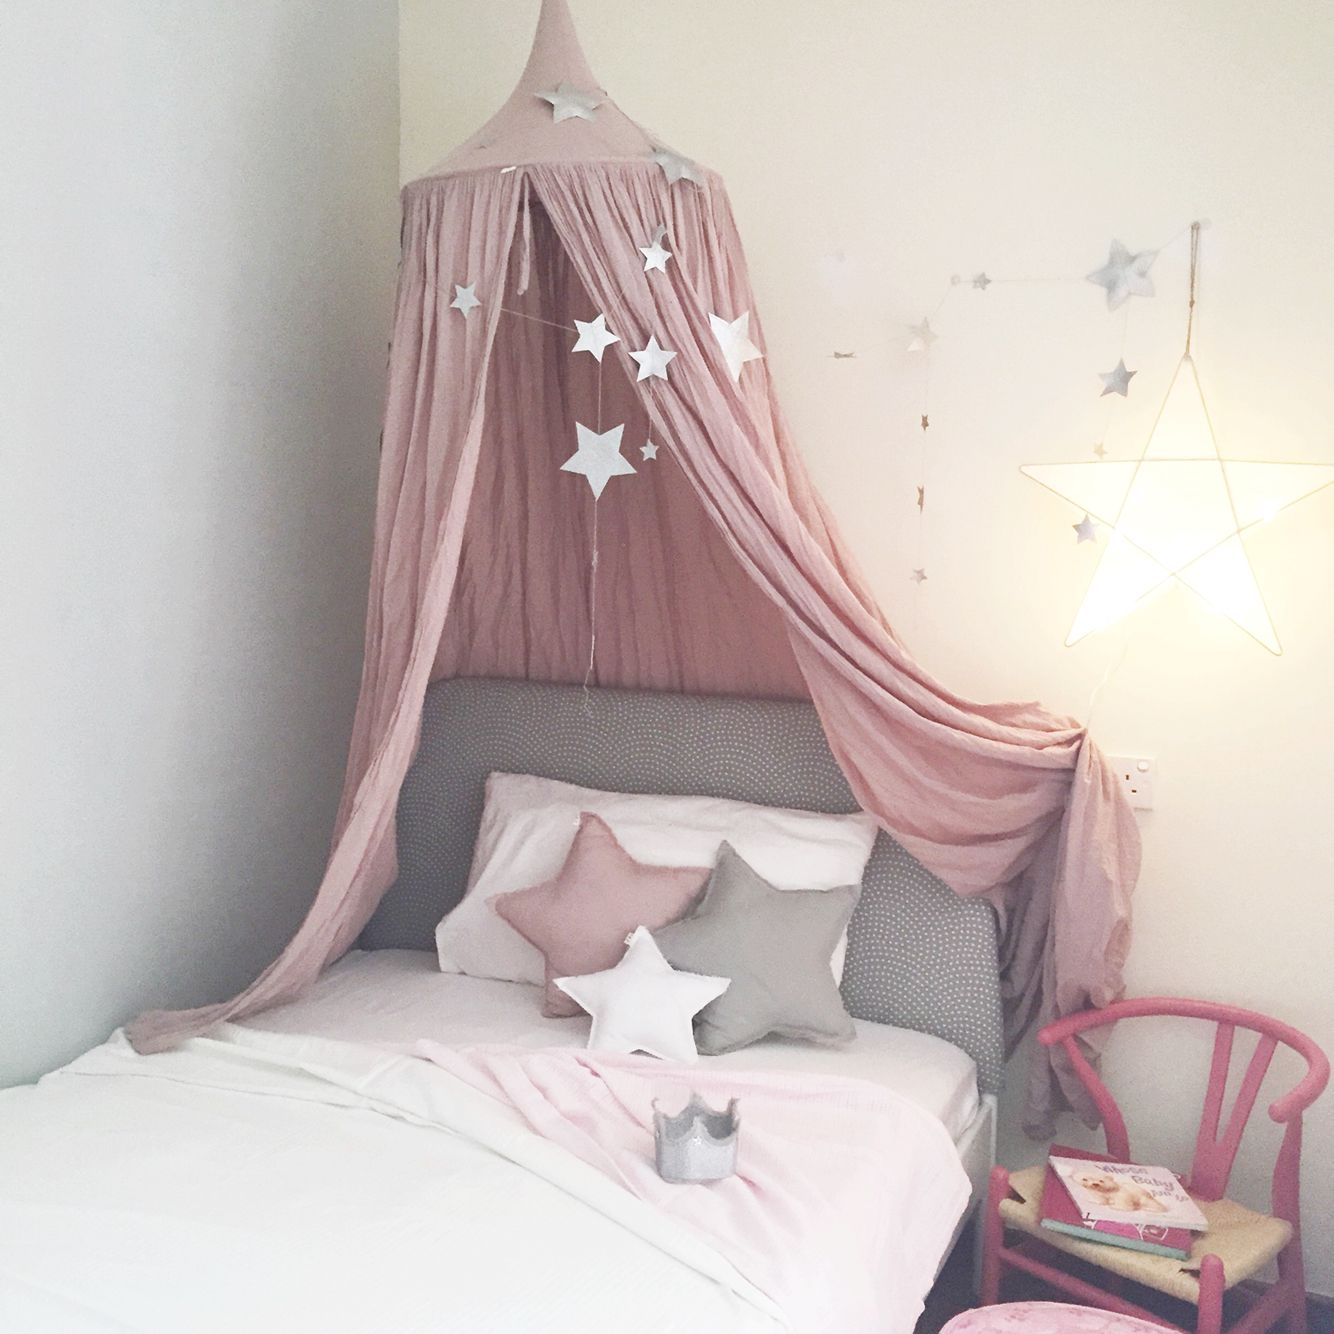 Little Girls Bedroom Paint Ideas Paris Bedroom Black And White Cool Bedroom Colours Paint Bedroom Ideas Master Bedroom: My Peg For The Little Girl's Eventual Toddler Room